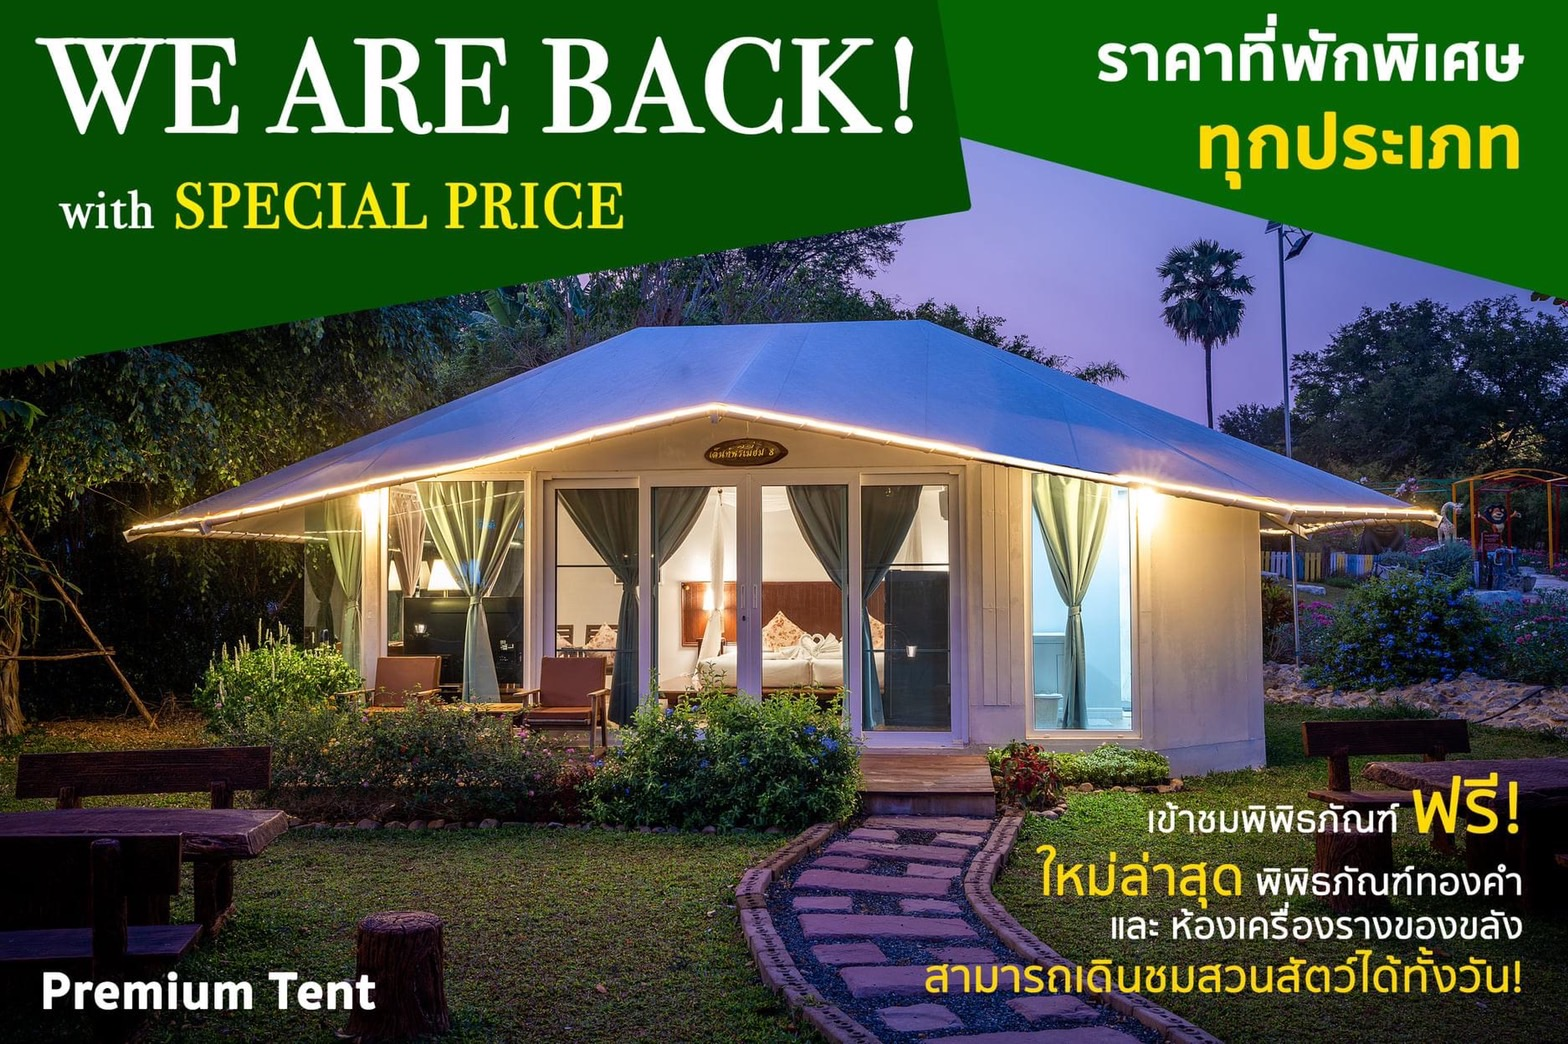 weare-back-with-special-price